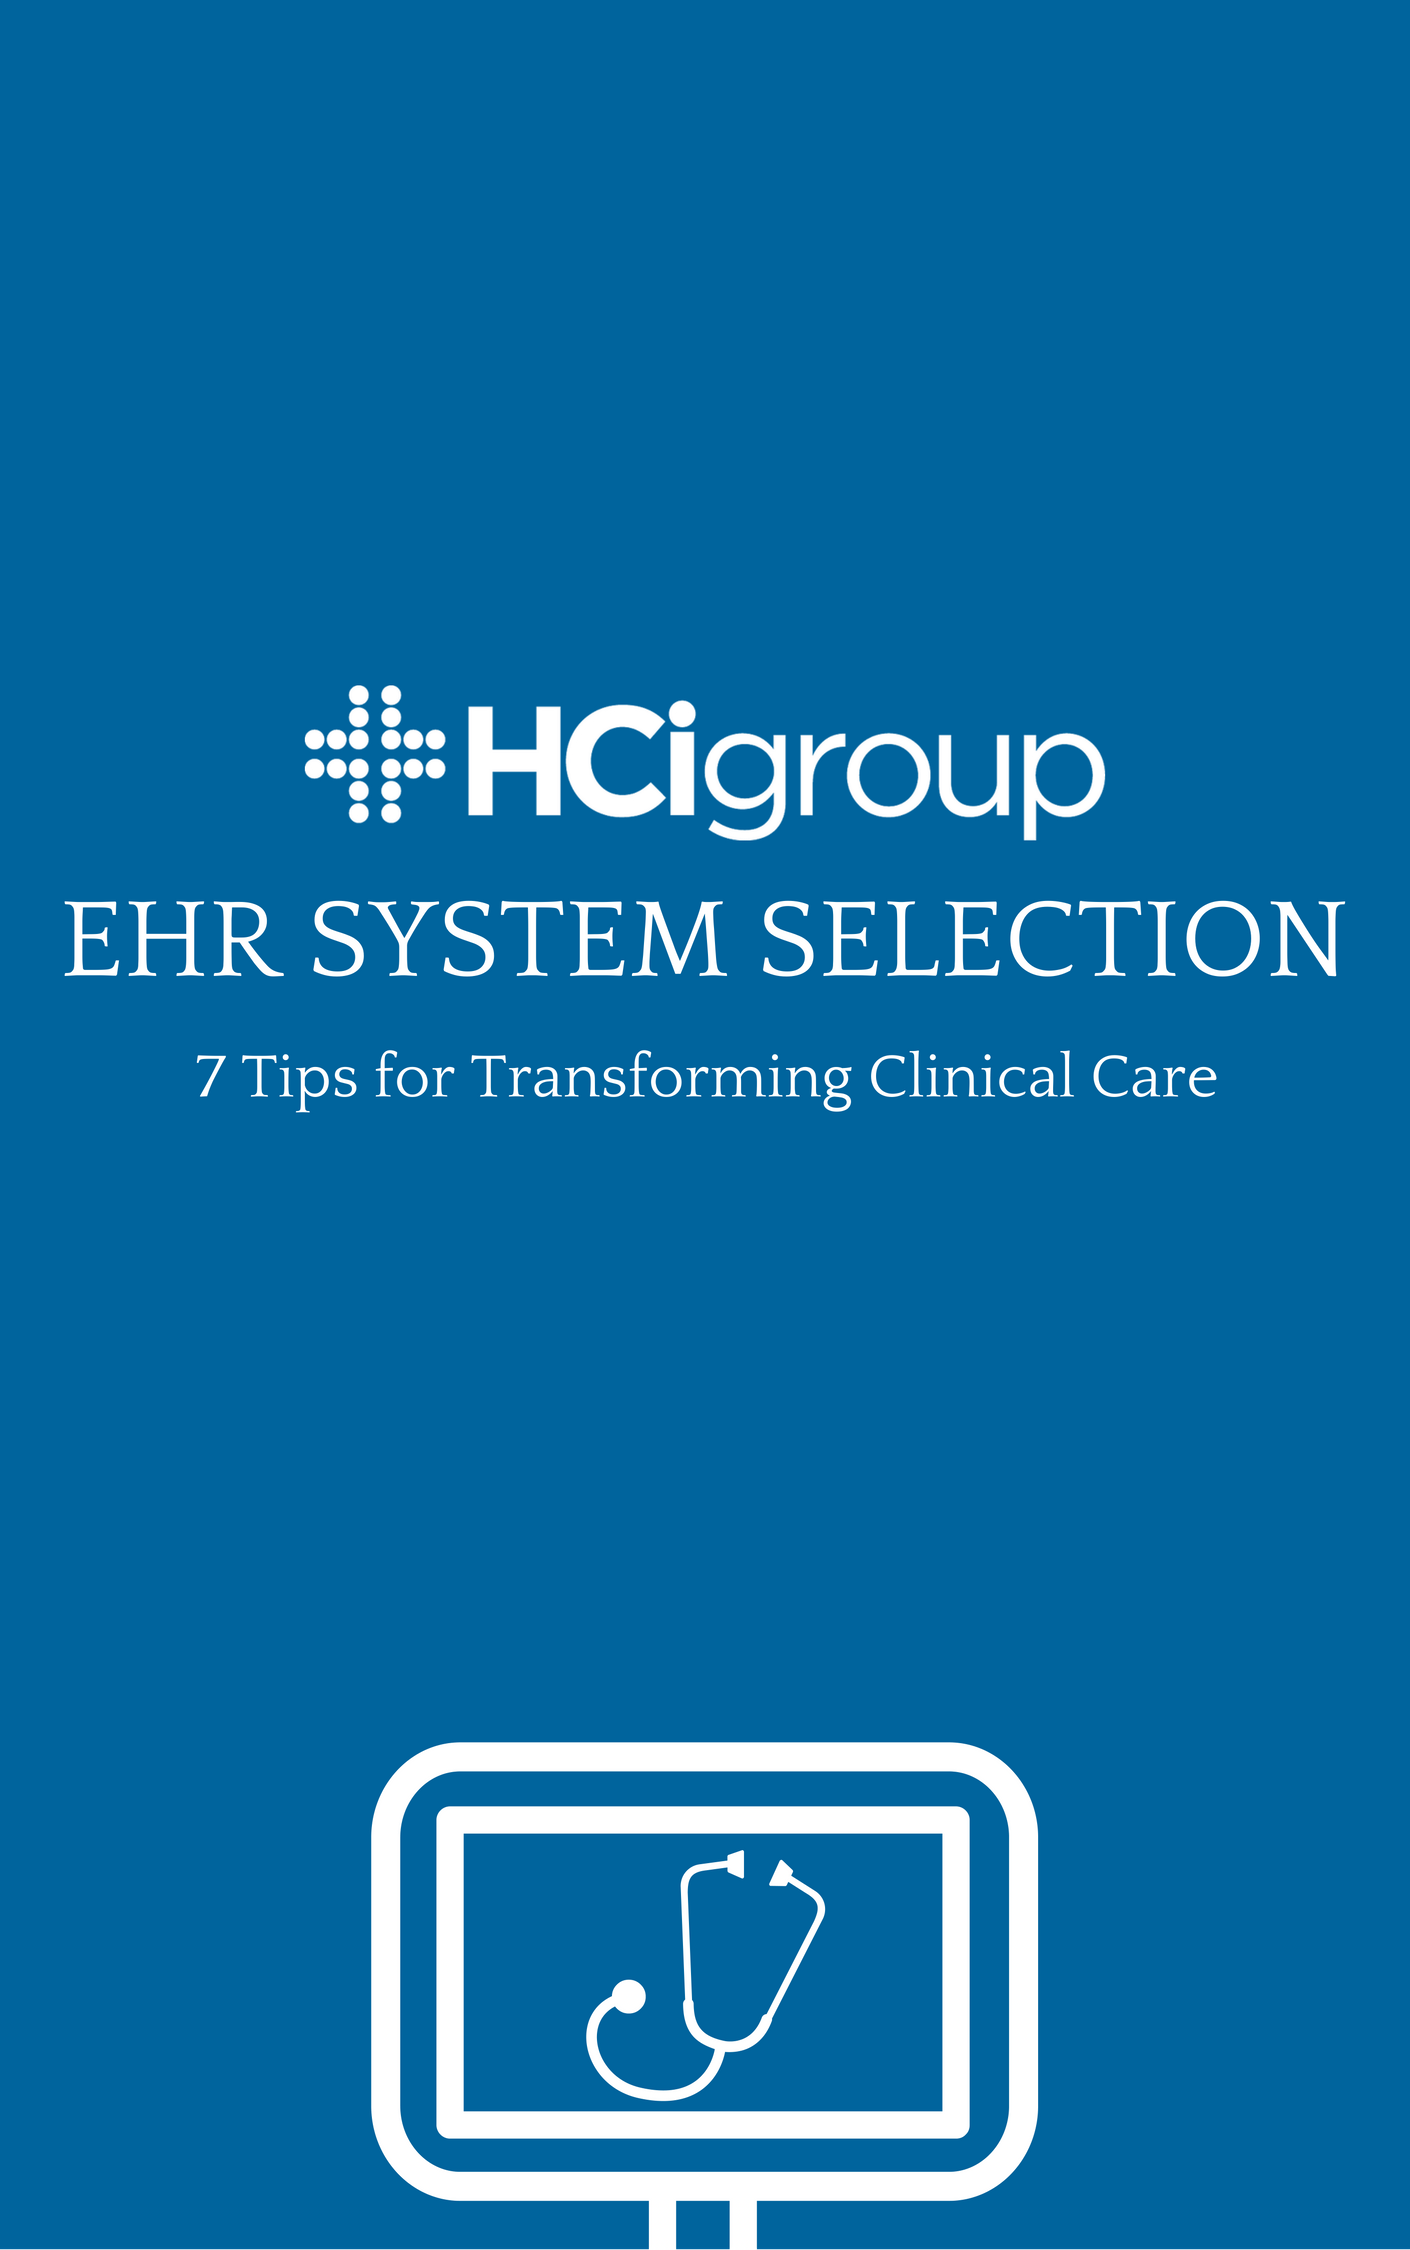 The HCI Group EHR System Selection: 7 Tips for Transforming Clinical Care